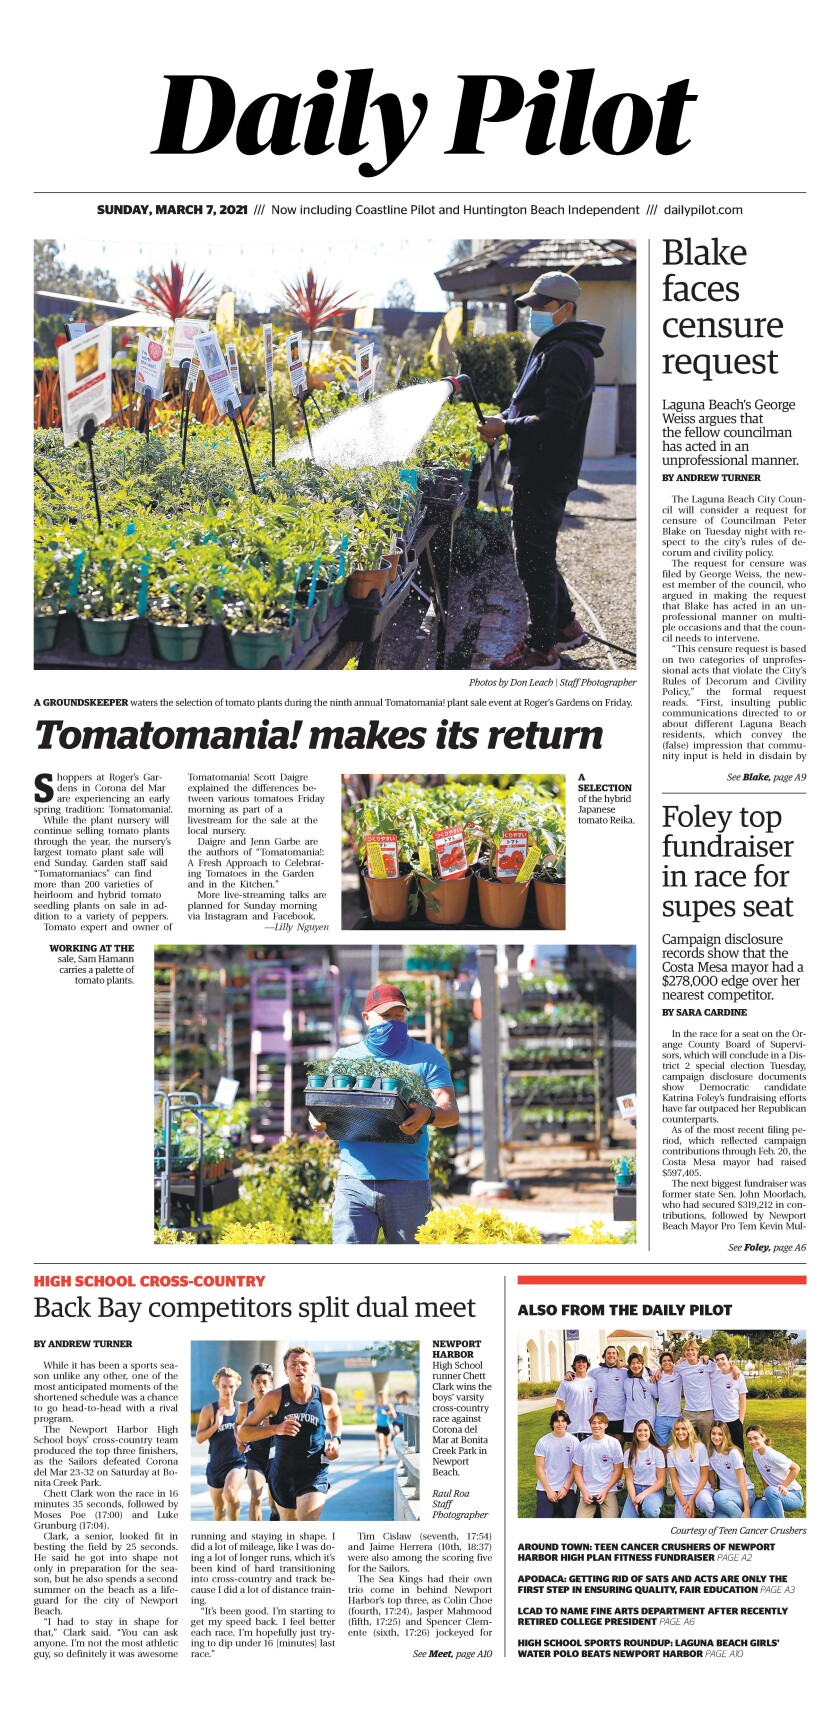 Front page of Daily Pilot e-newspaper for Sunday, March 7, 2021.